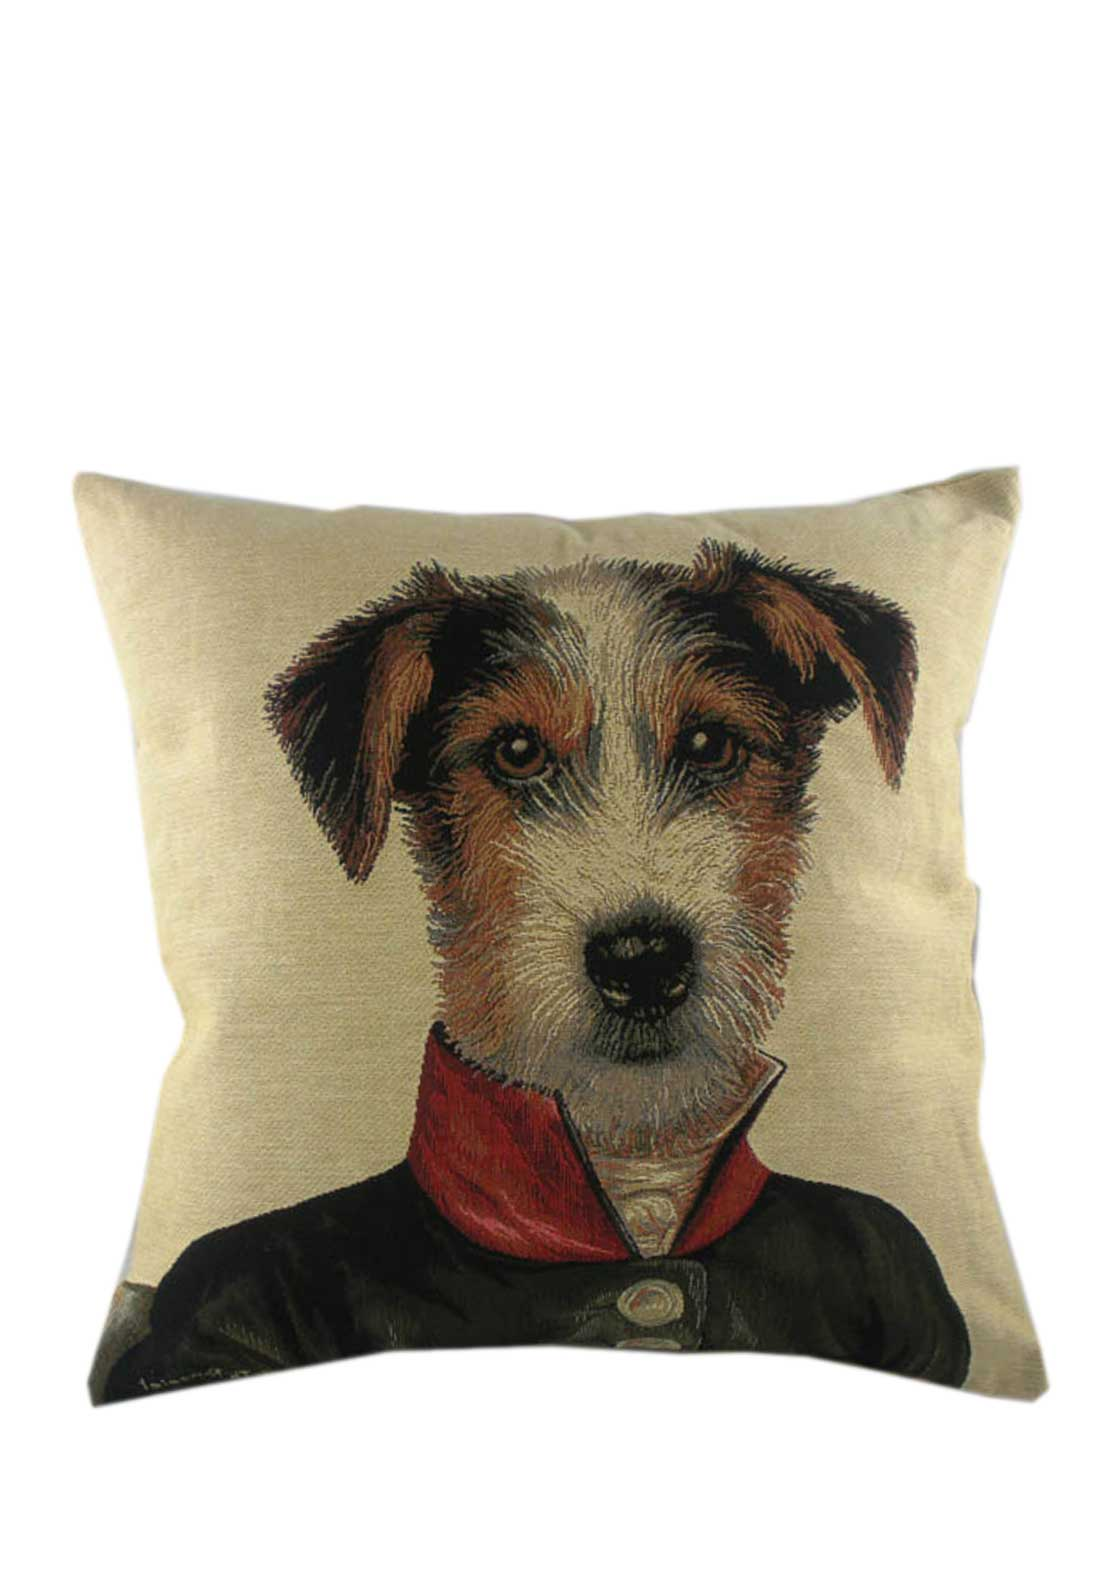 Ambassador Cushion, 45 x 45cm, Jack Russell with scarf